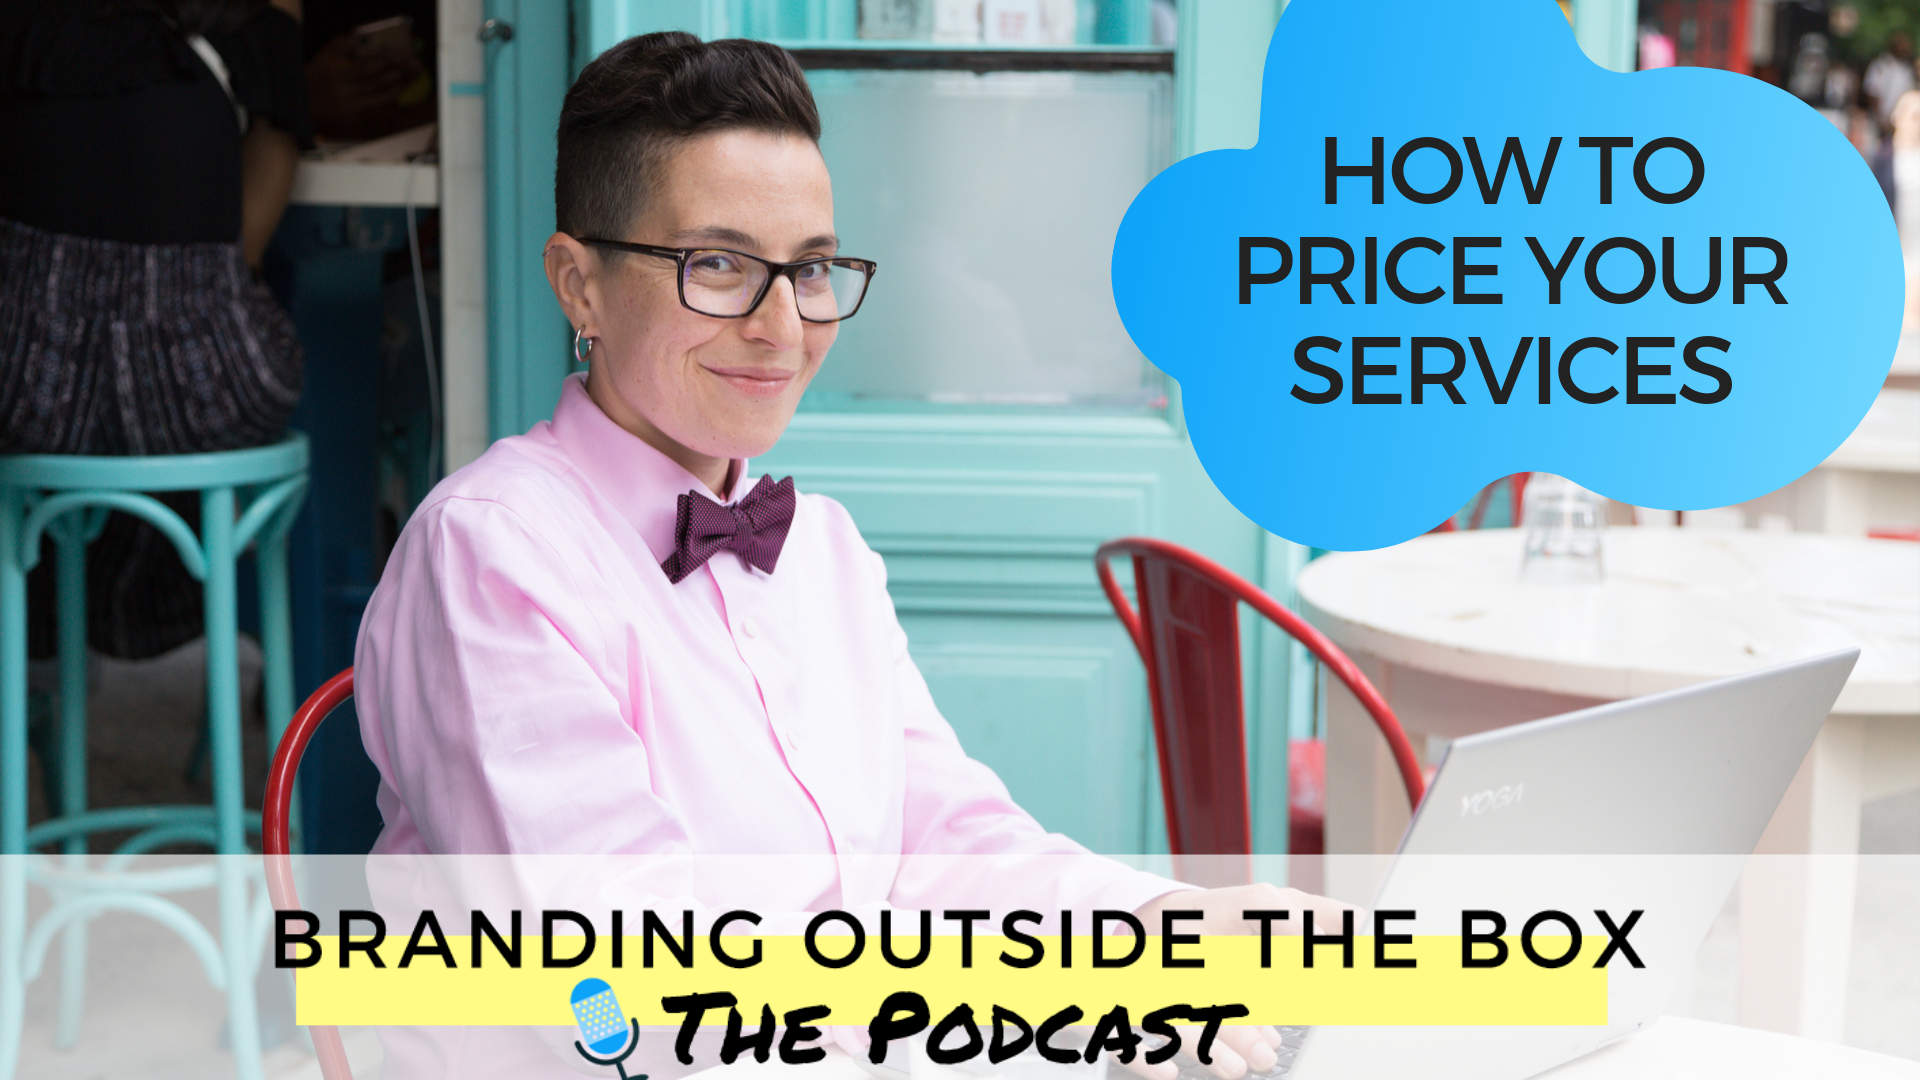 How to Price Your Services